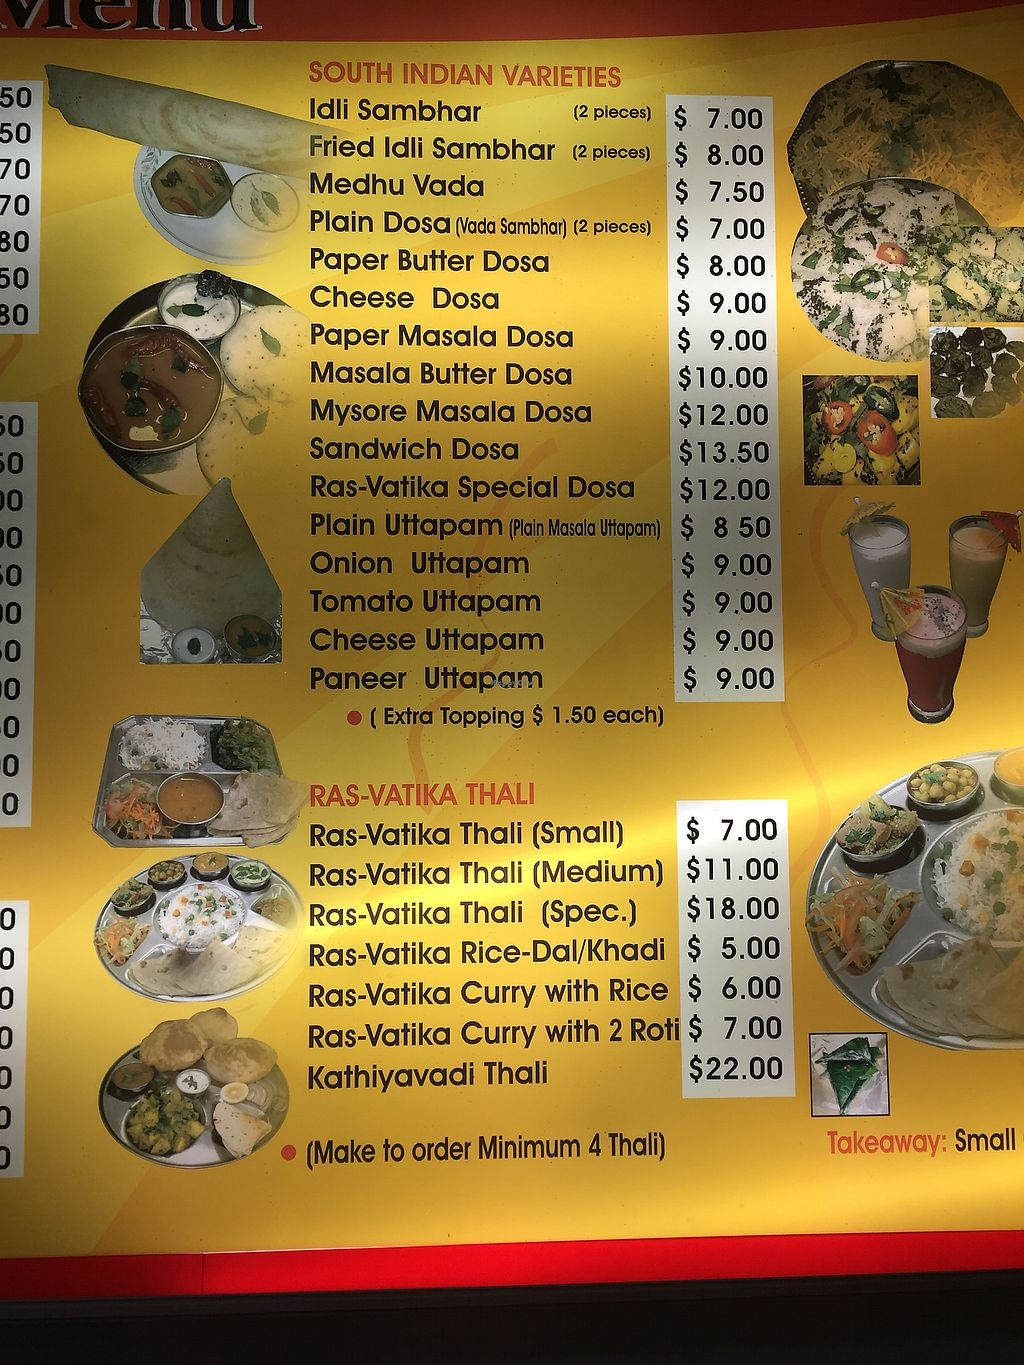 """Photo of Ras Vatika Indian Vegetarian Cafe  by <a href=""""/members/profile/Tiggy"""">Tiggy</a> <br/>Menu 2 <br/> December 27, 2017  - <a href='/contact/abuse/image/4475/339416'>Report</a>"""